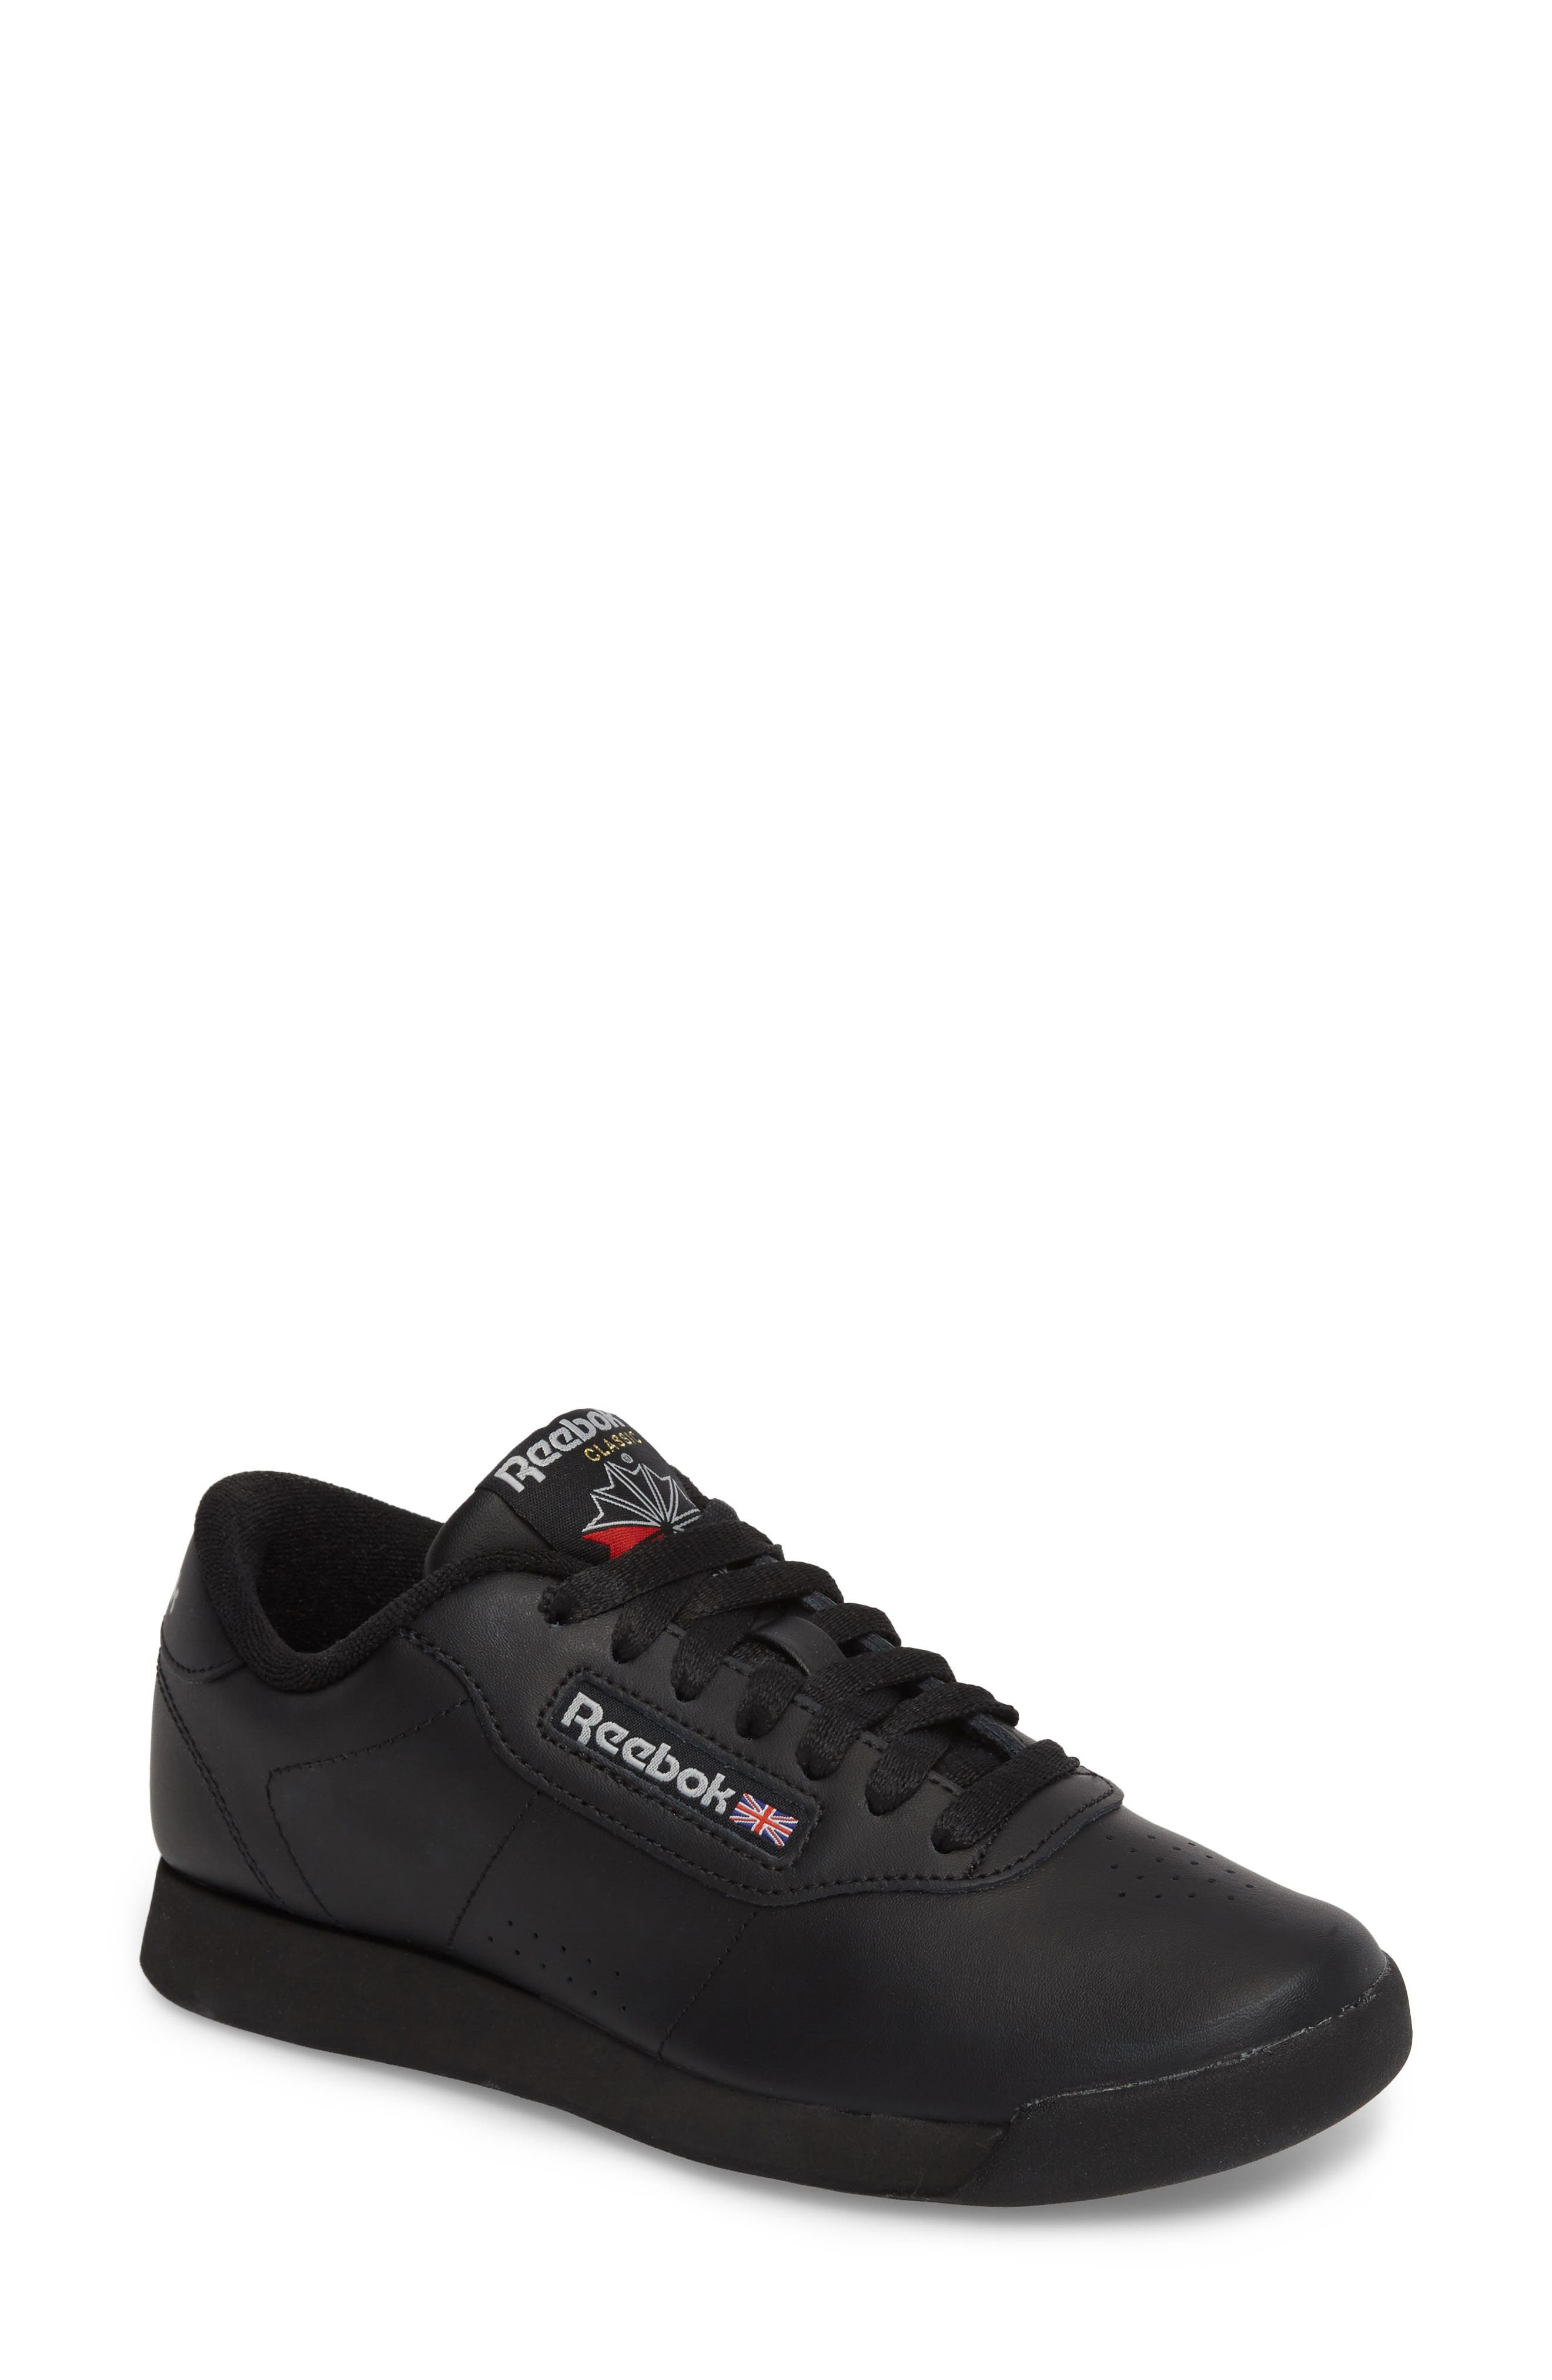 Princess Sneaker,                             Main thumbnail 1, color,                             BLACK